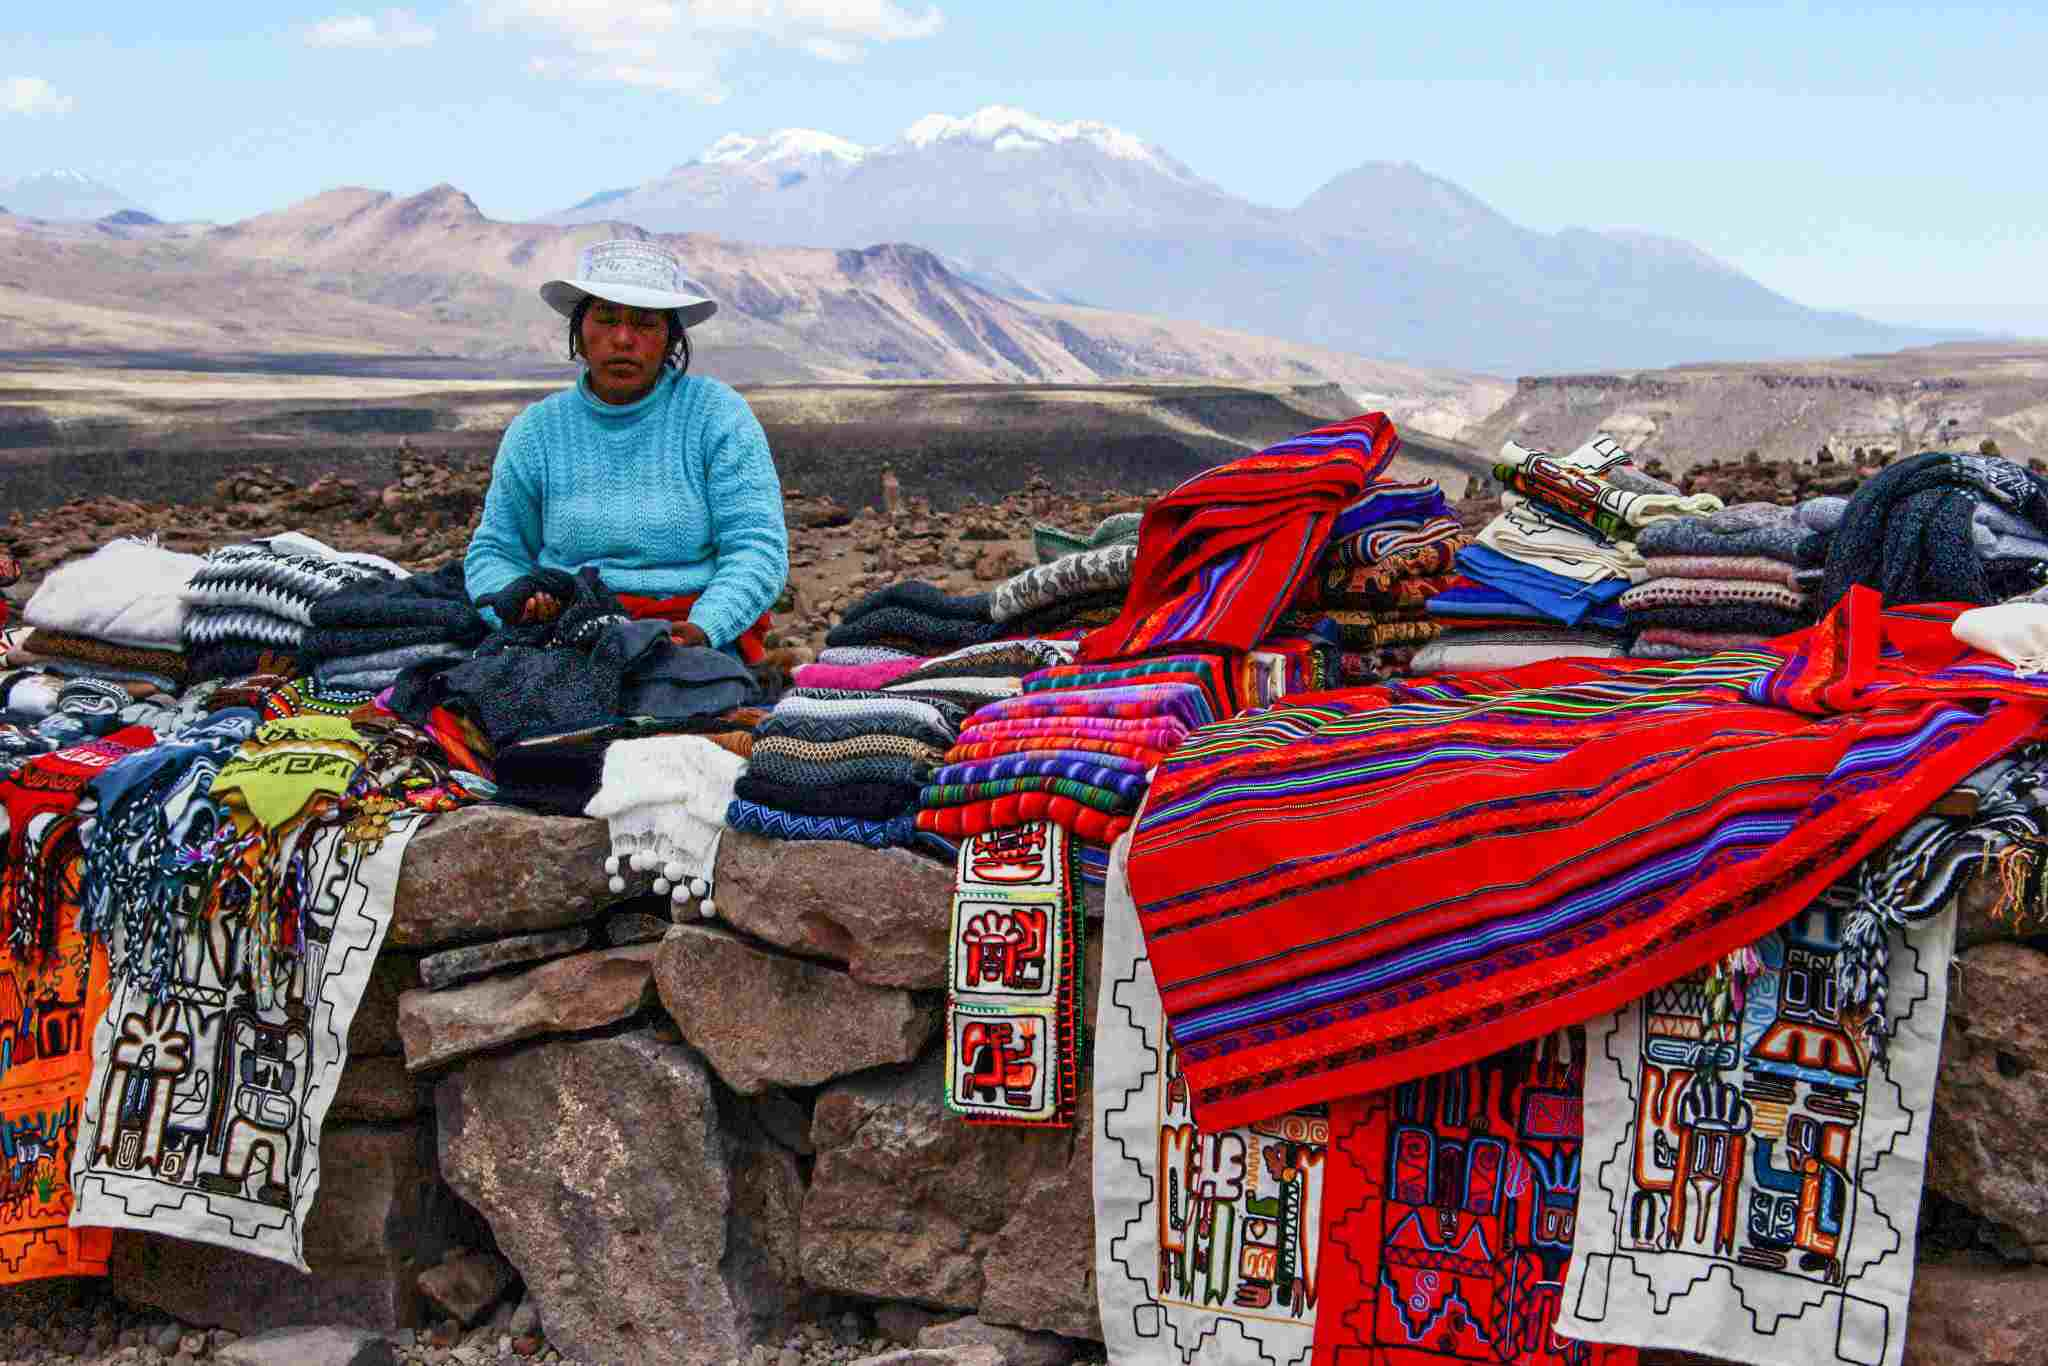 A woman selling traditional Peruvian blankets in Colca Canyon